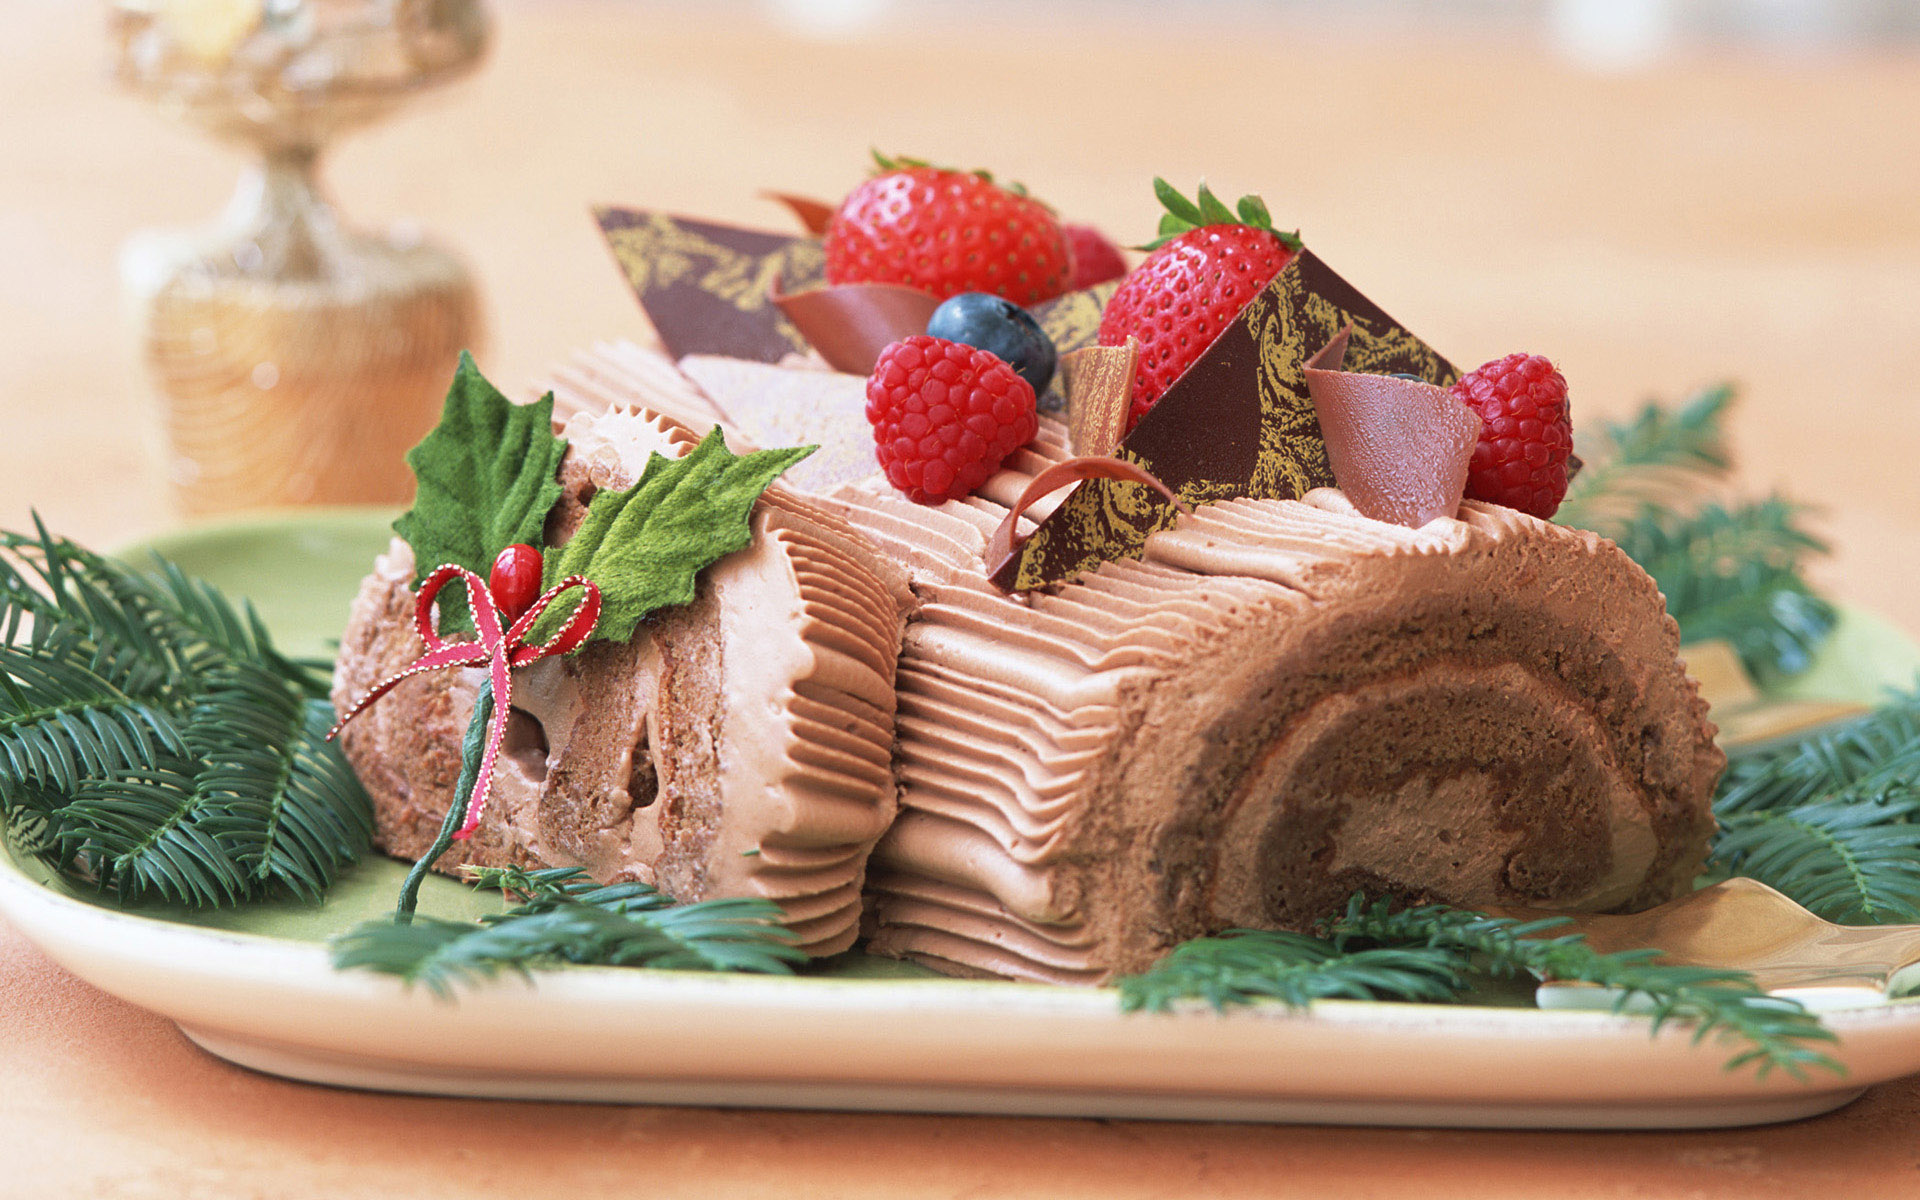 Sweets & Desserts : Fruit Dessert, Cake, Sweets ,Chocolates 1920*1200 NO